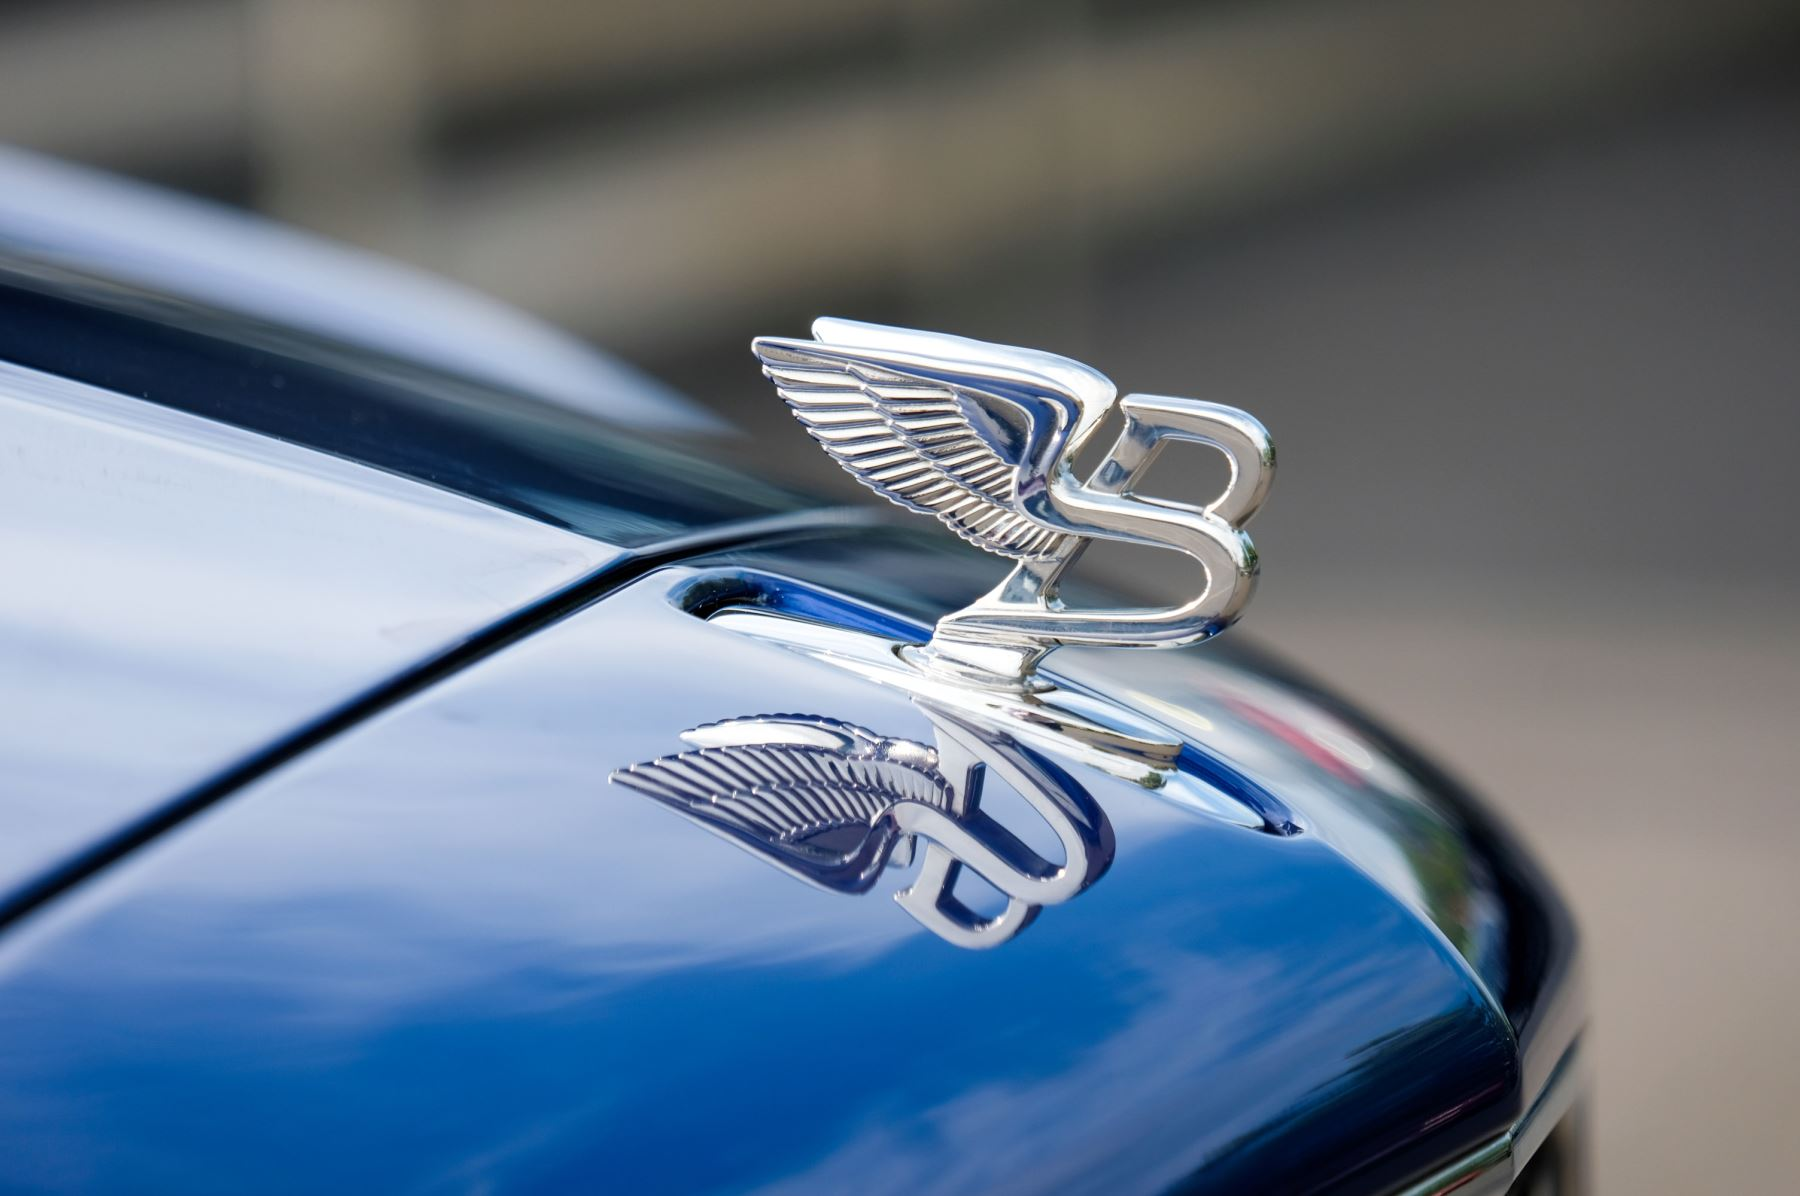 Bentley Mulsanne Speed 6.8 V8 Speed - Speed Premier and Entertainment Specification image 8